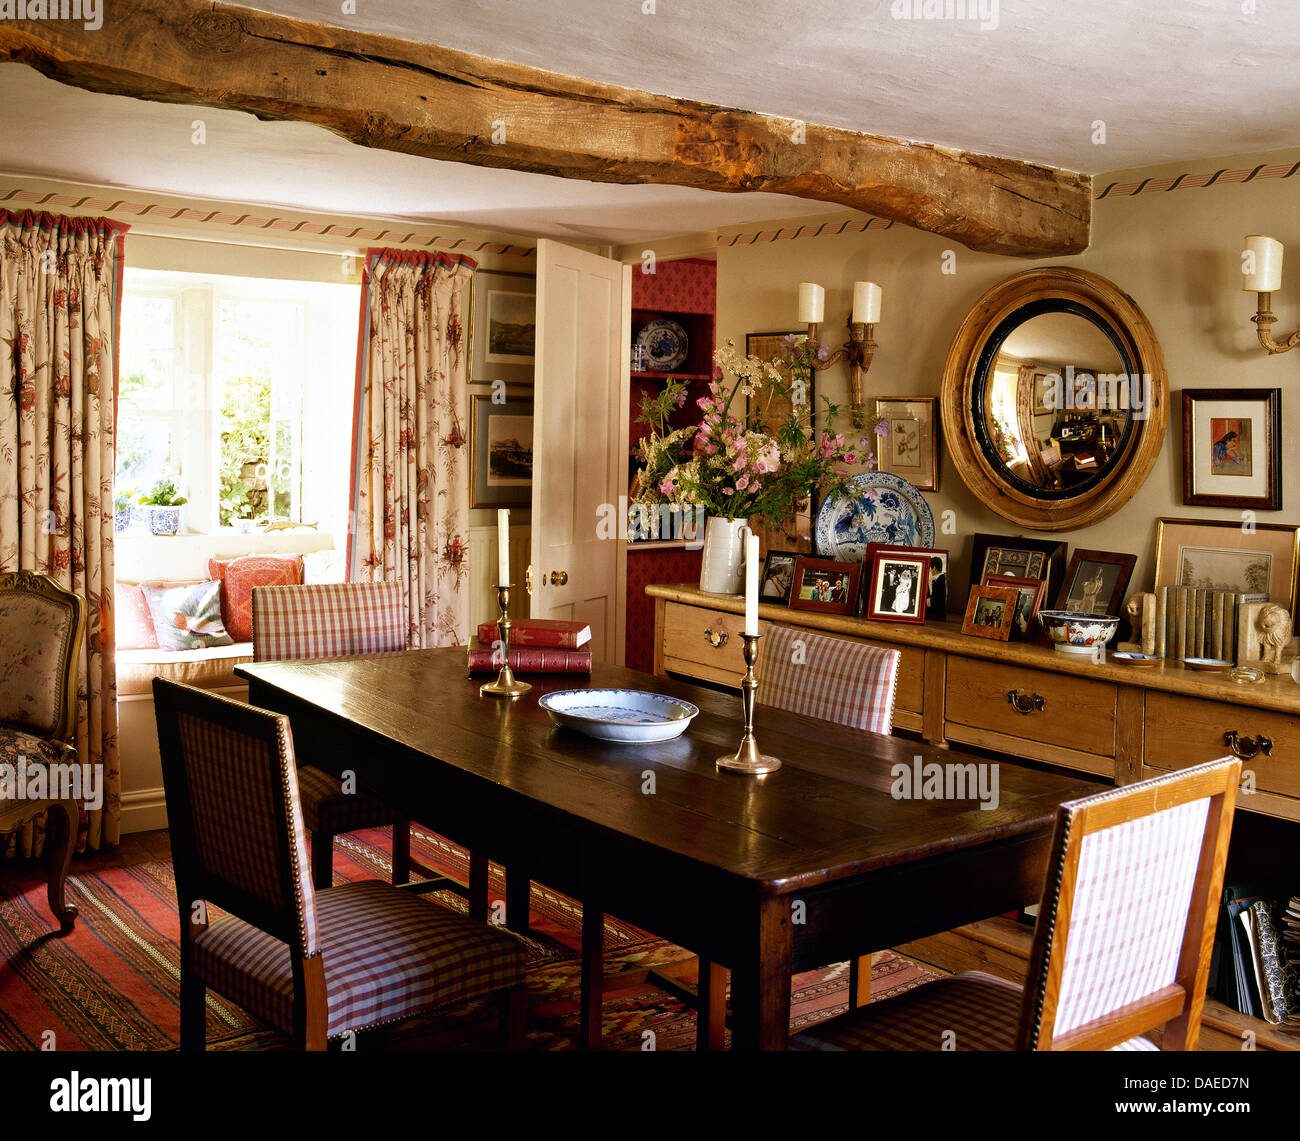 Cottage Dining Room: Upholstered Chairs At Antique Oak Table In Cottage Dining